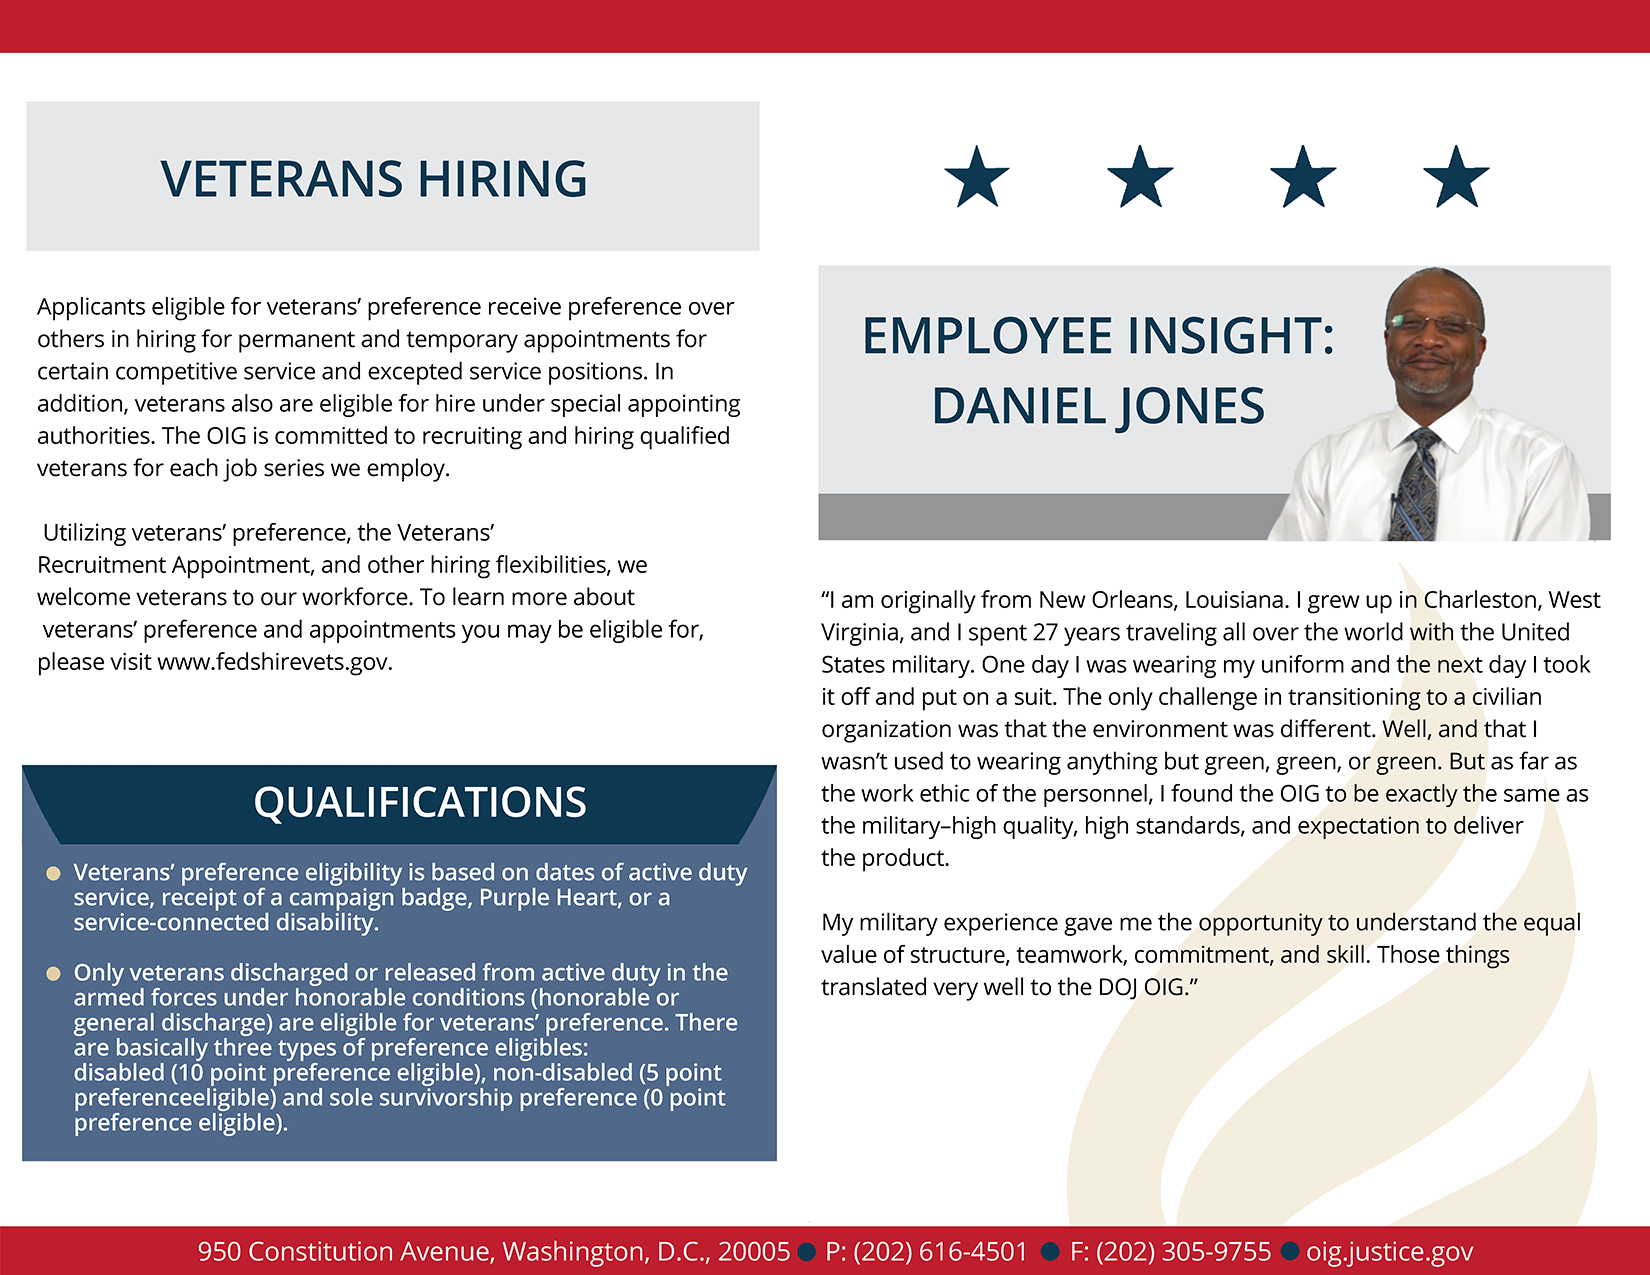 Read more about the veterans employee experience